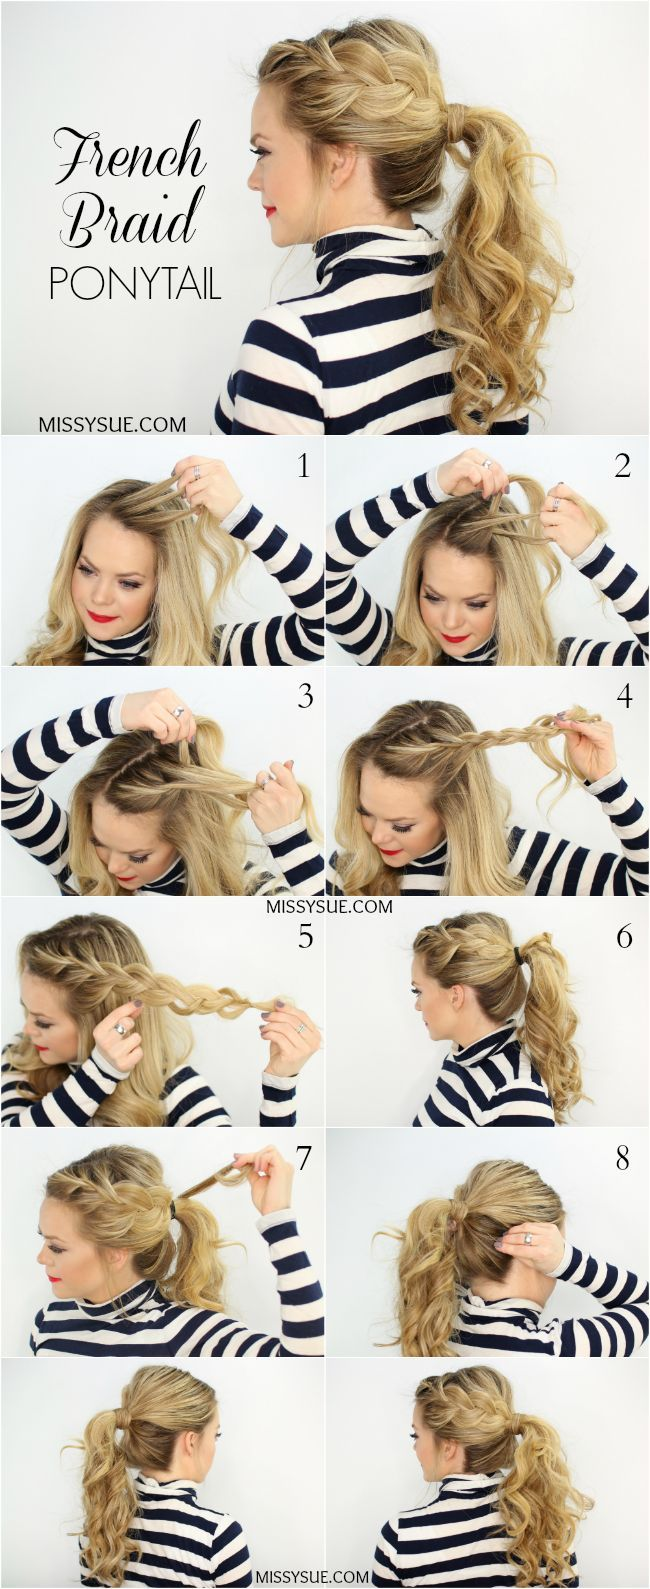 This is a nice and easy ponytail that looks great on just about everyone.